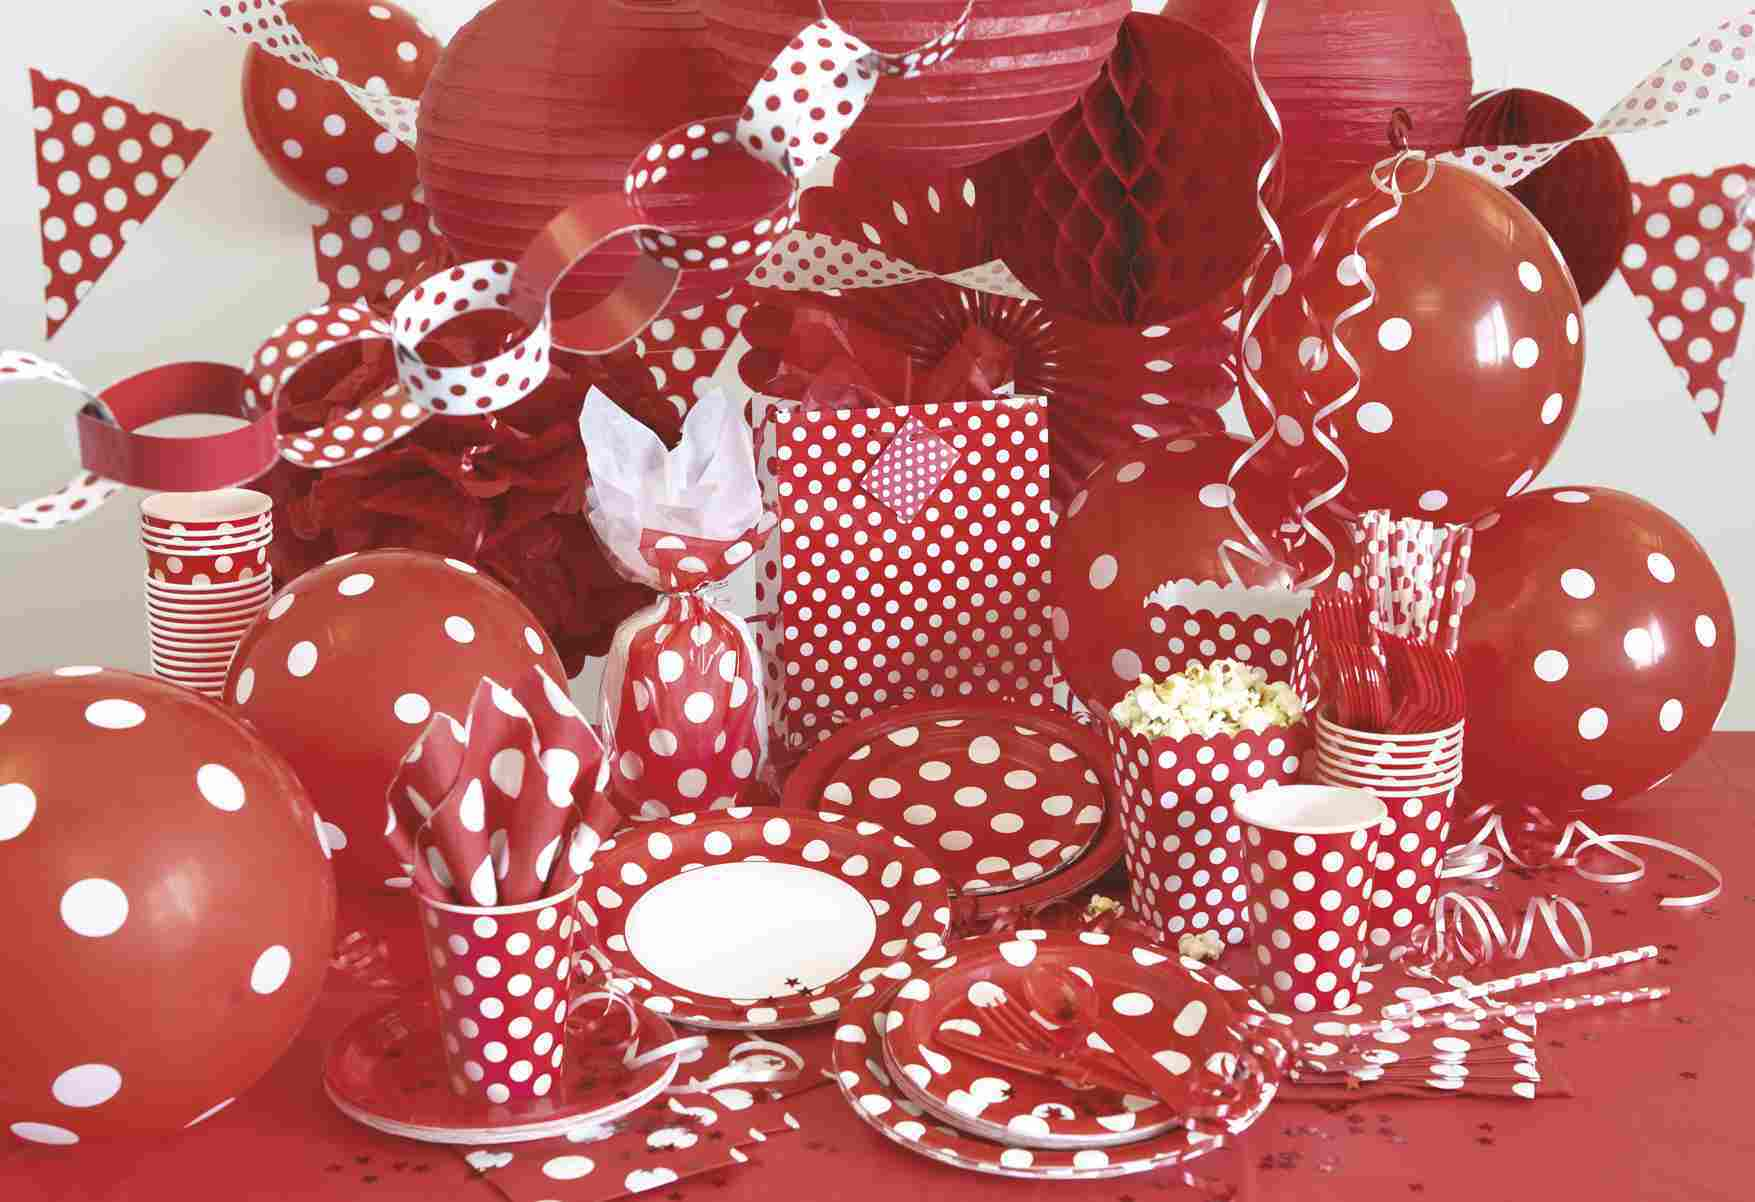 & Polka Dots Party Supplies - Bartzu0027s Party Stores